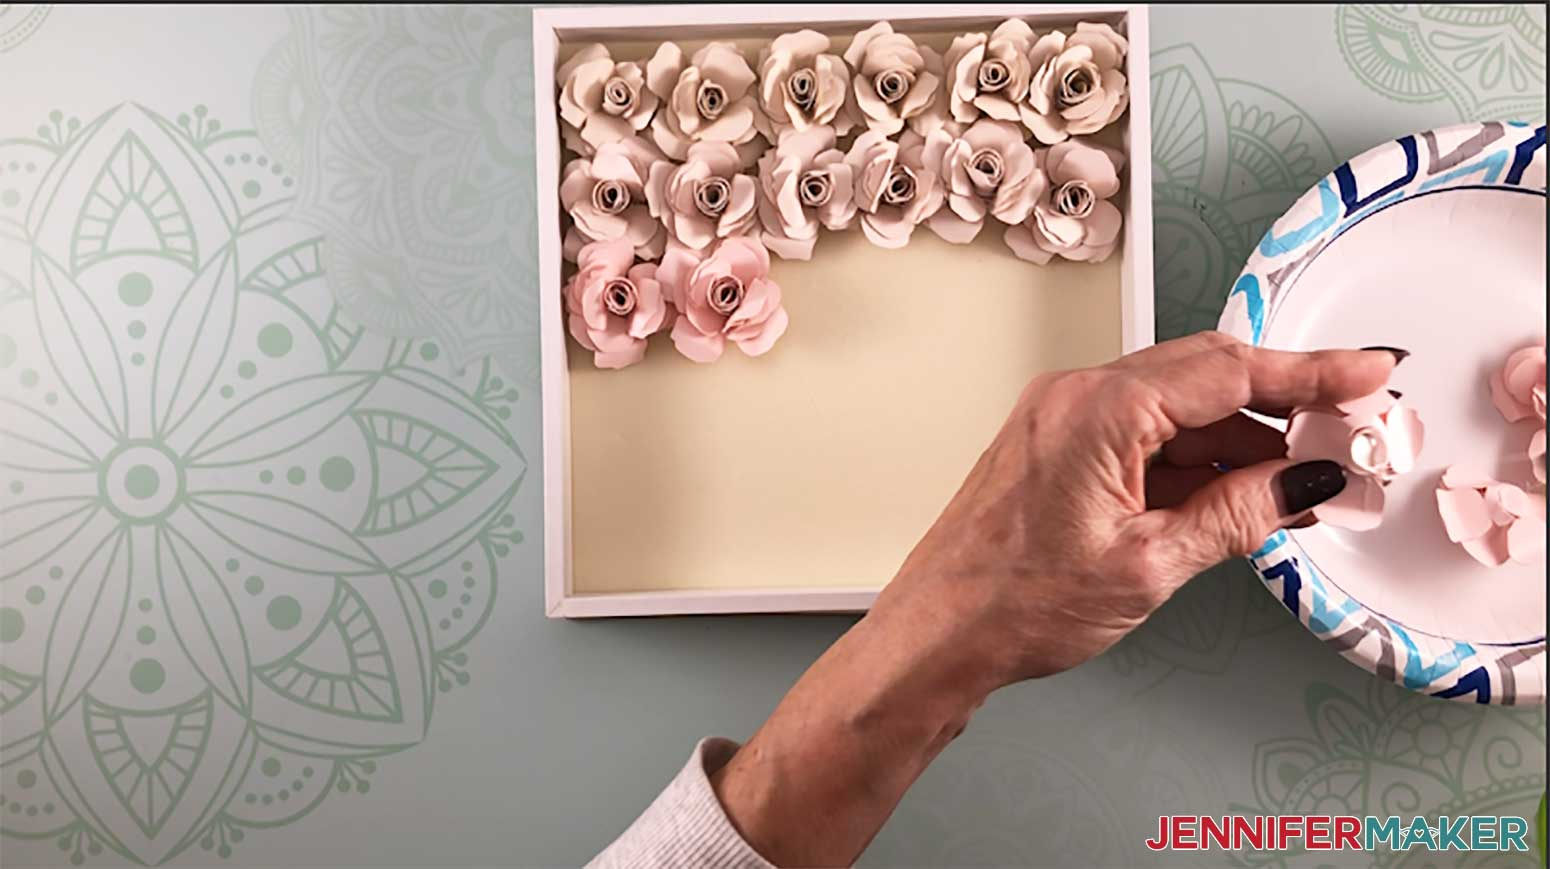 Filling up the shadow box with paper flowers